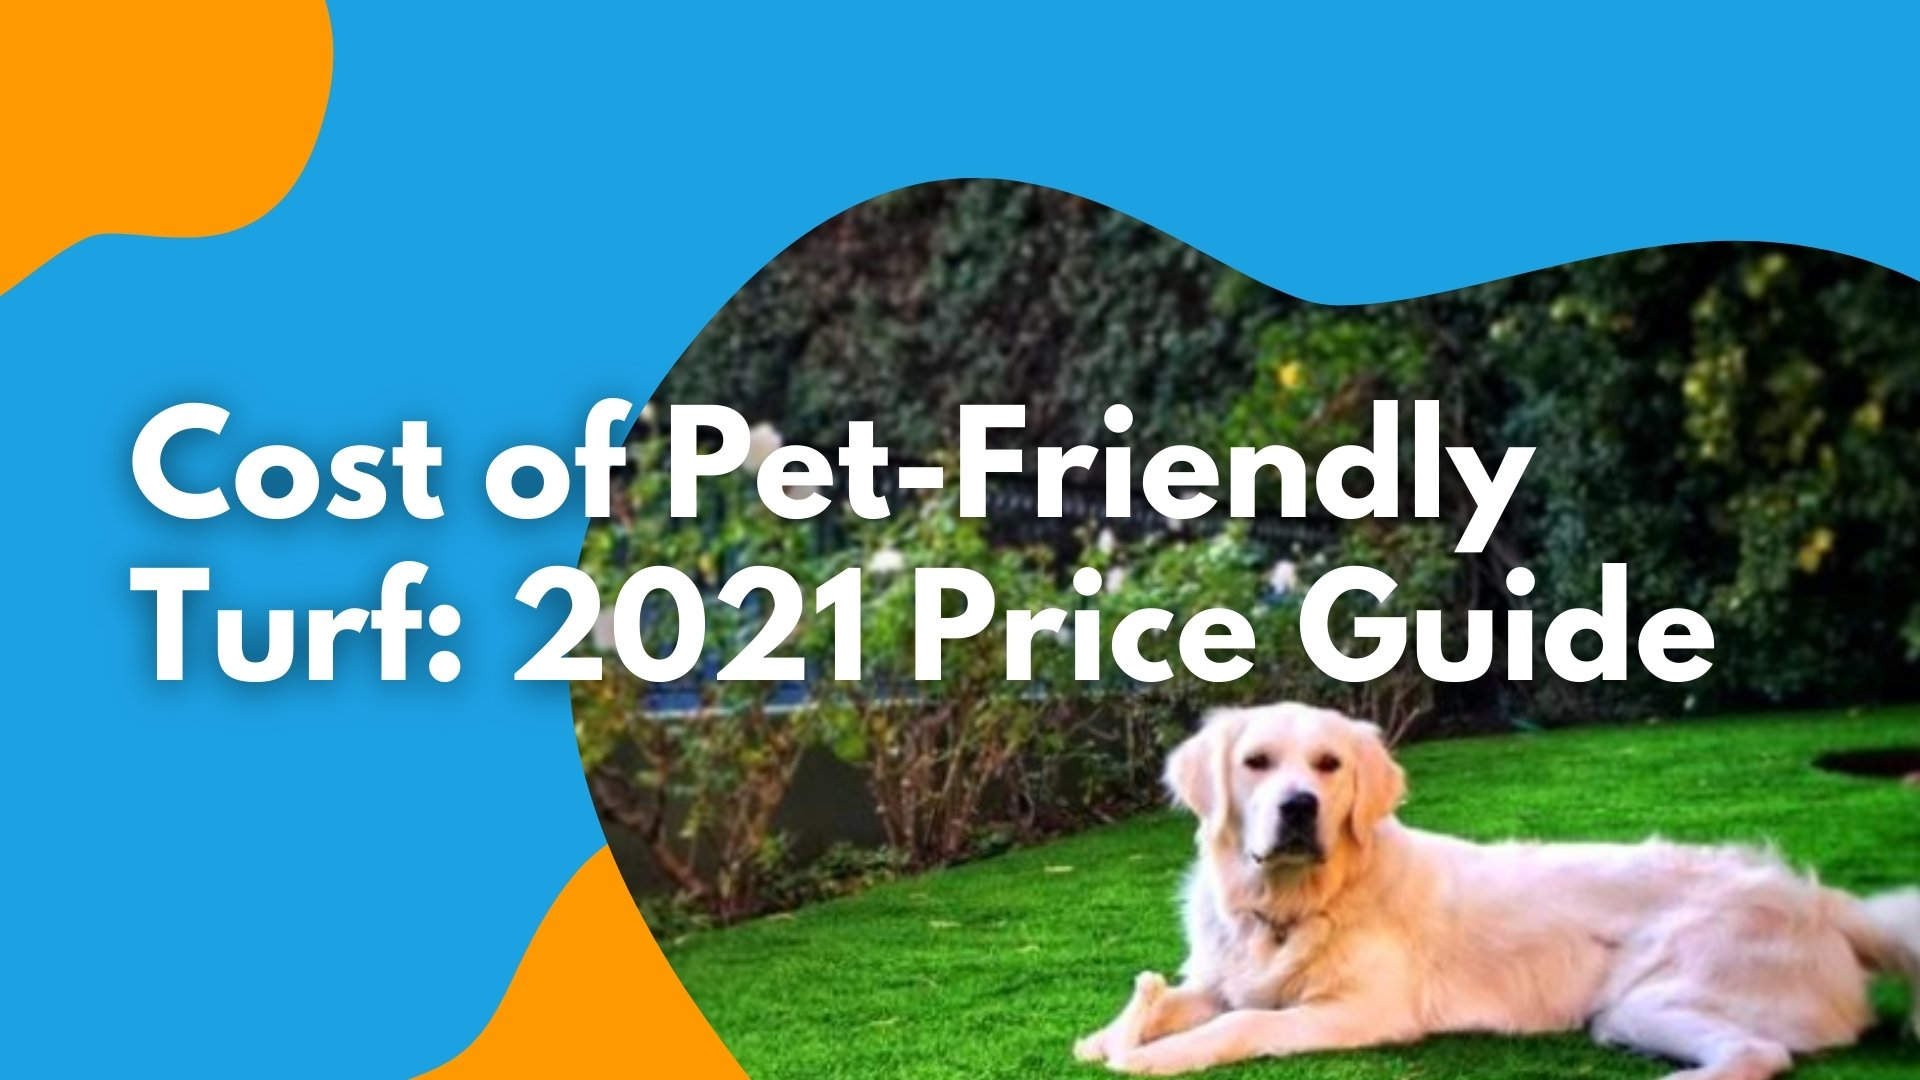 Cost of Pet-Friendly Turf Installation 2021